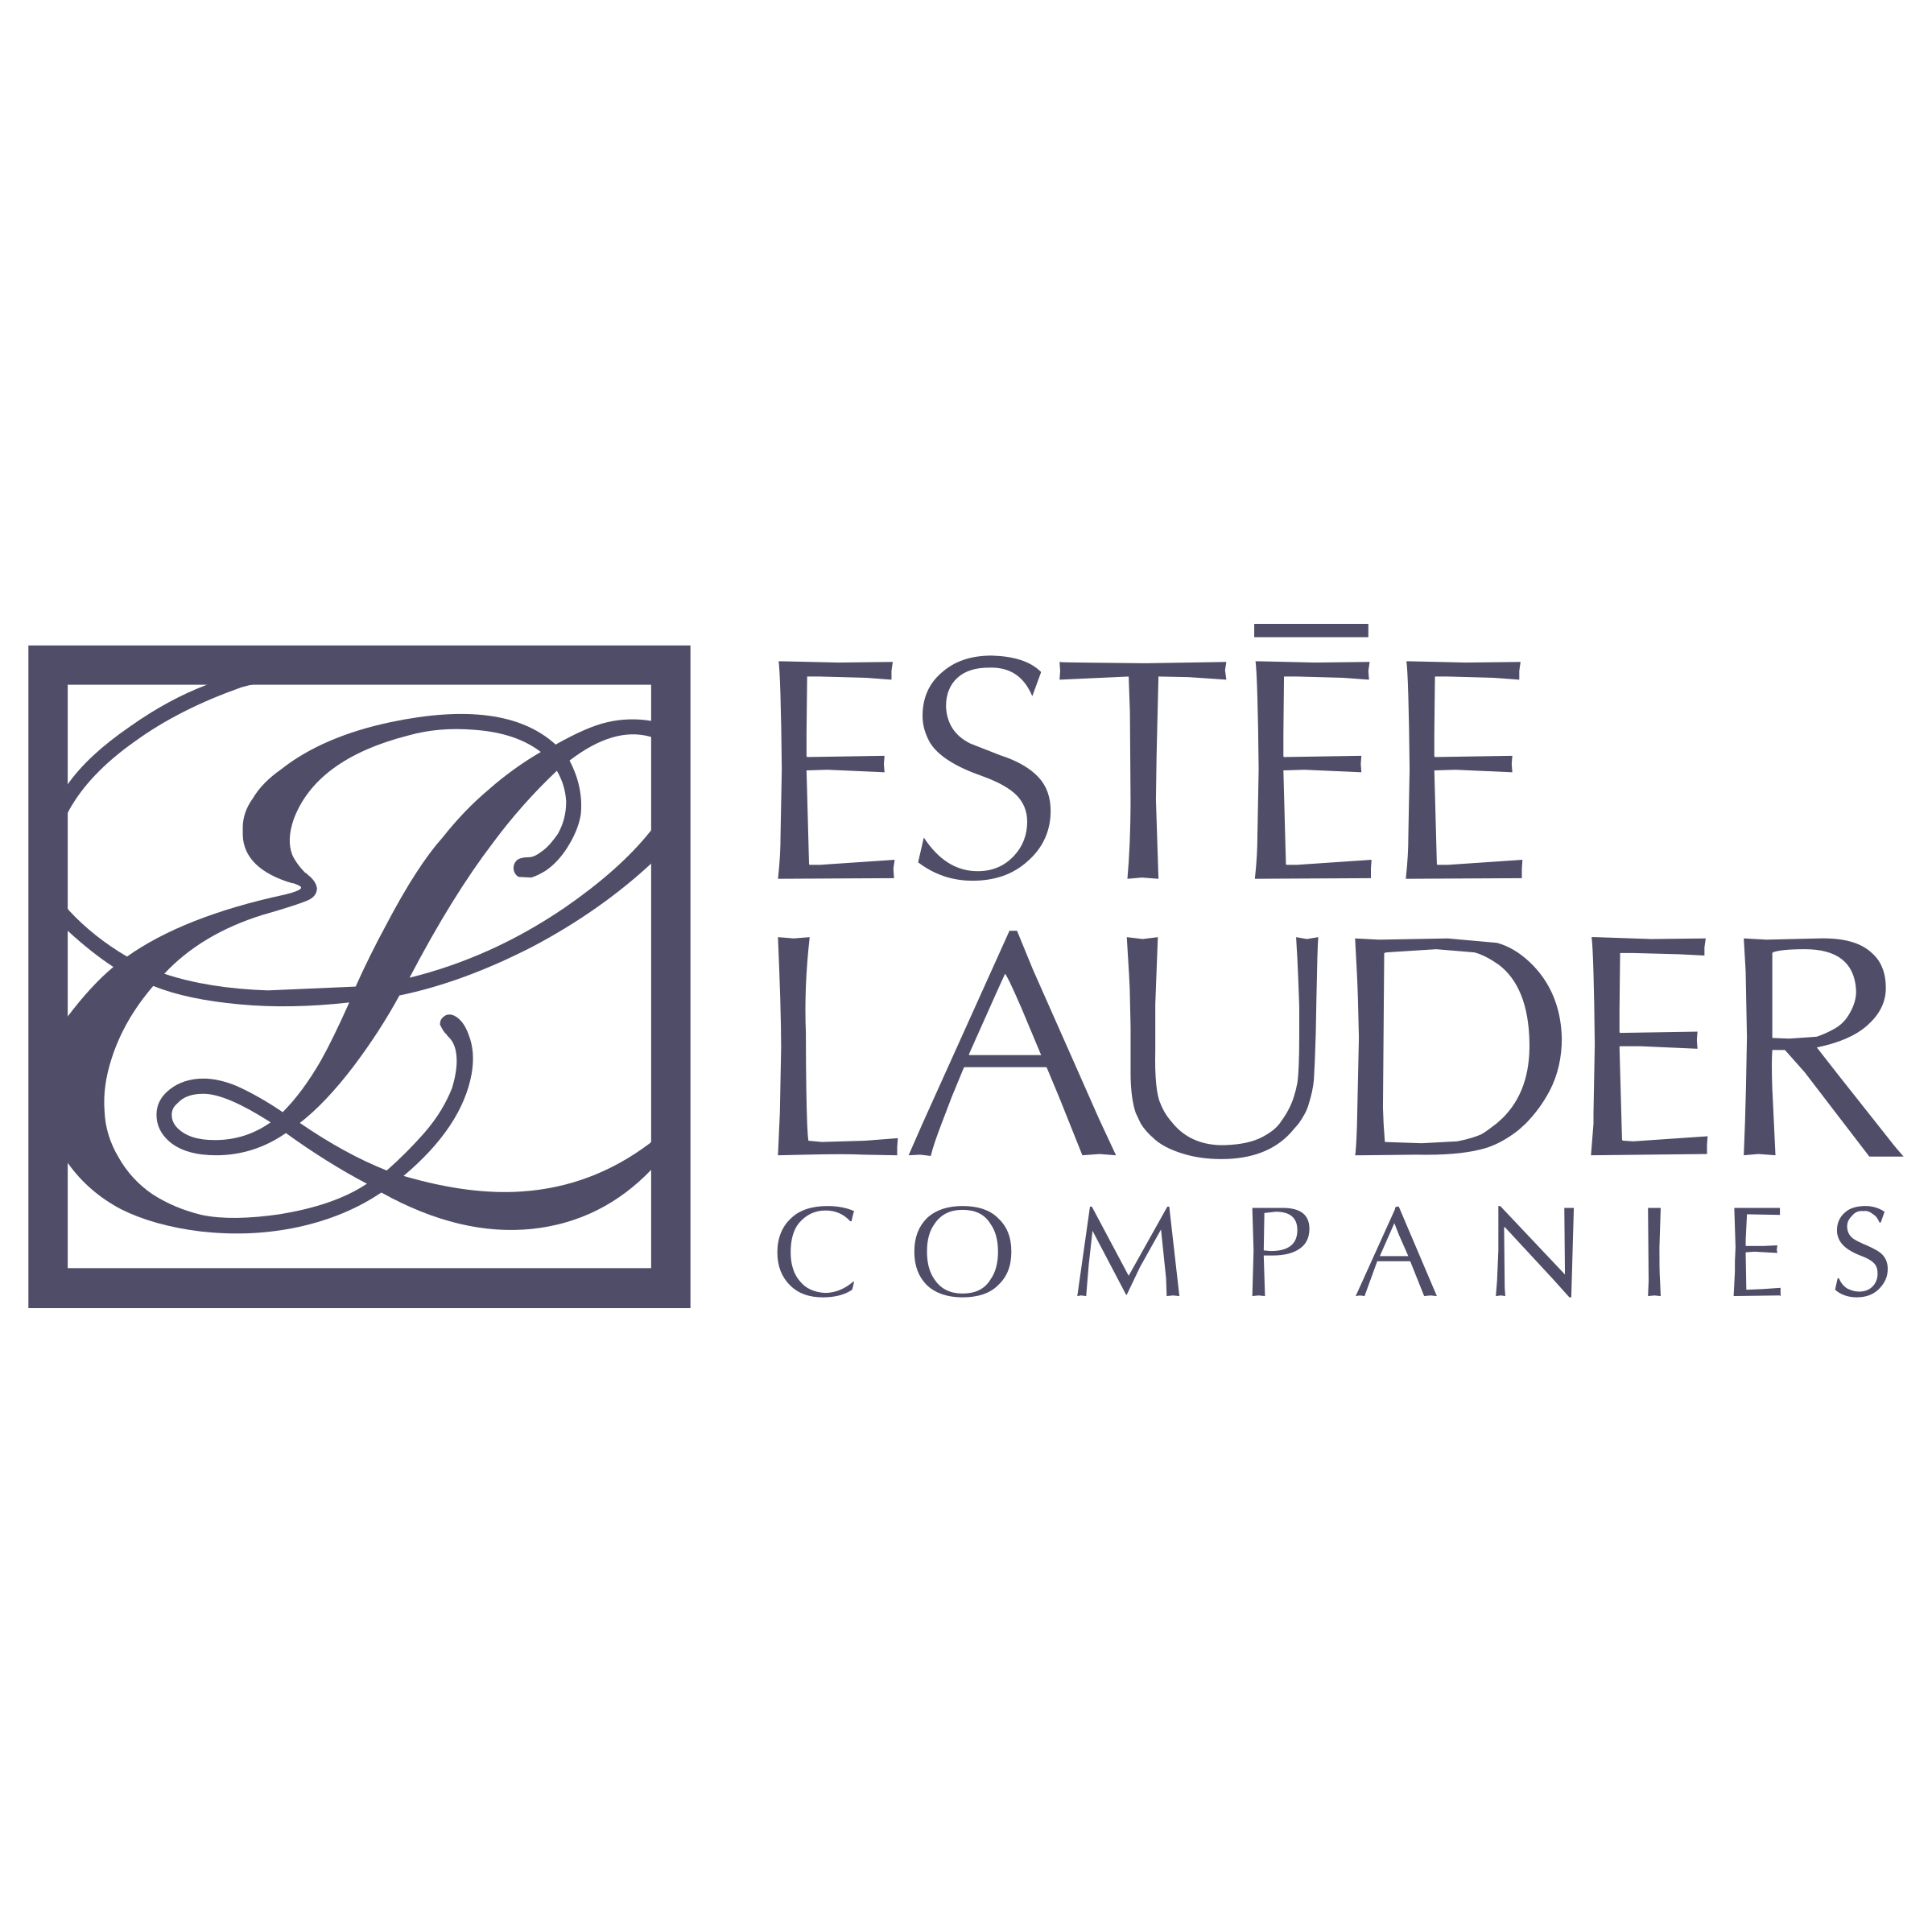 Image result for estee lauder logo